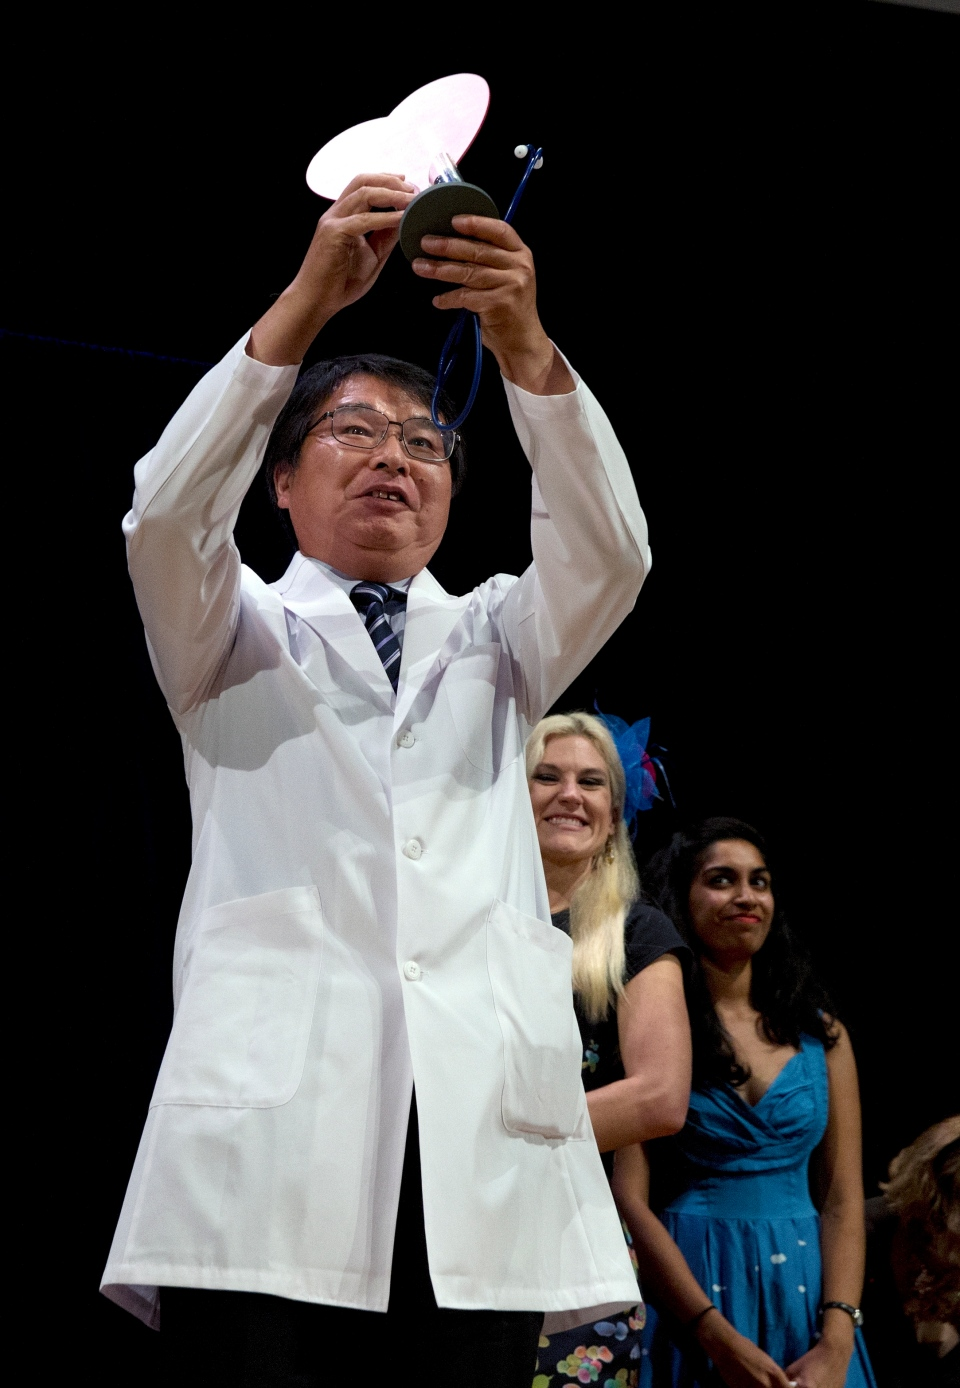 Akira Horiuchi, of Japan, holds up his Ig Nobel for medical education during award ceremonies at Harvard University in Cambridge, Mass., Thursday, Sept. 13, 2018. Horiuchi won for devising a revolutionary new way to give yourself a colonoscopy. (AP Photo/Michael Dwyer)